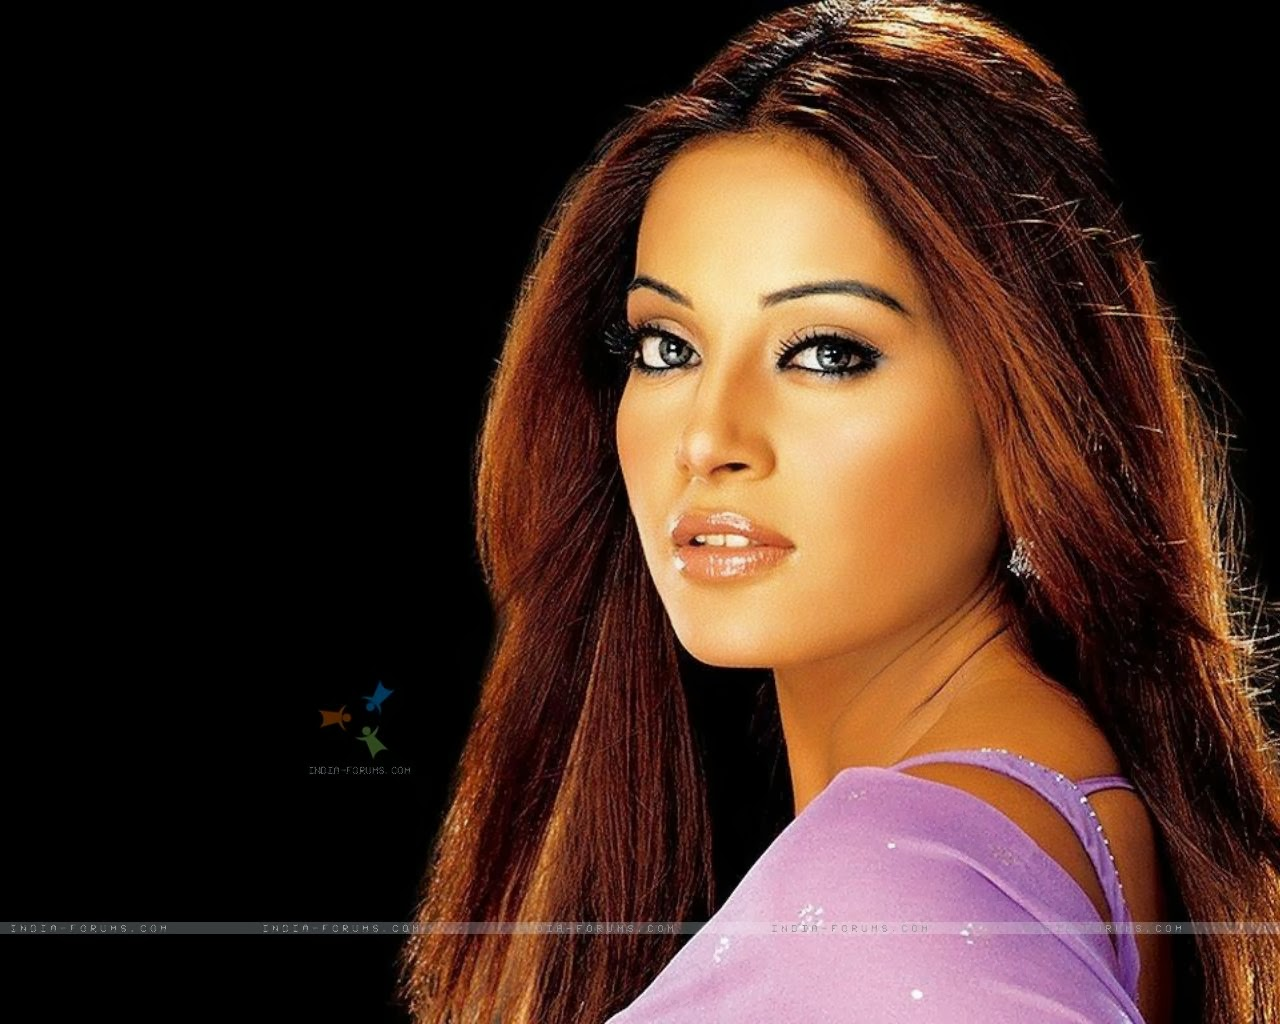 bipasha basu wallpaper/bipasha basu beautiful wallpaper/bipasha basu